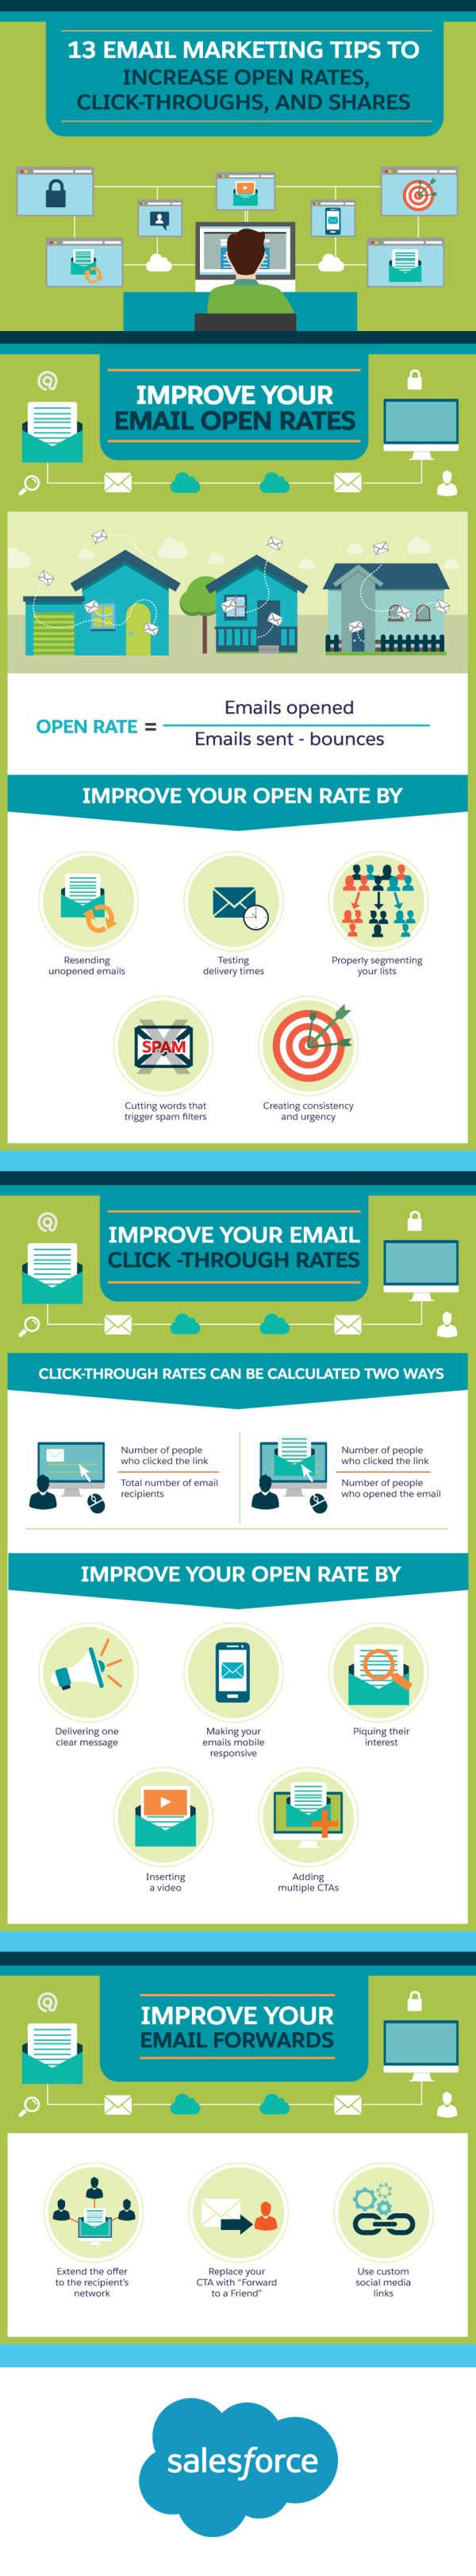 13 Email Marketing Tips to Increase Open Rates, Click-Throughs, and Shares